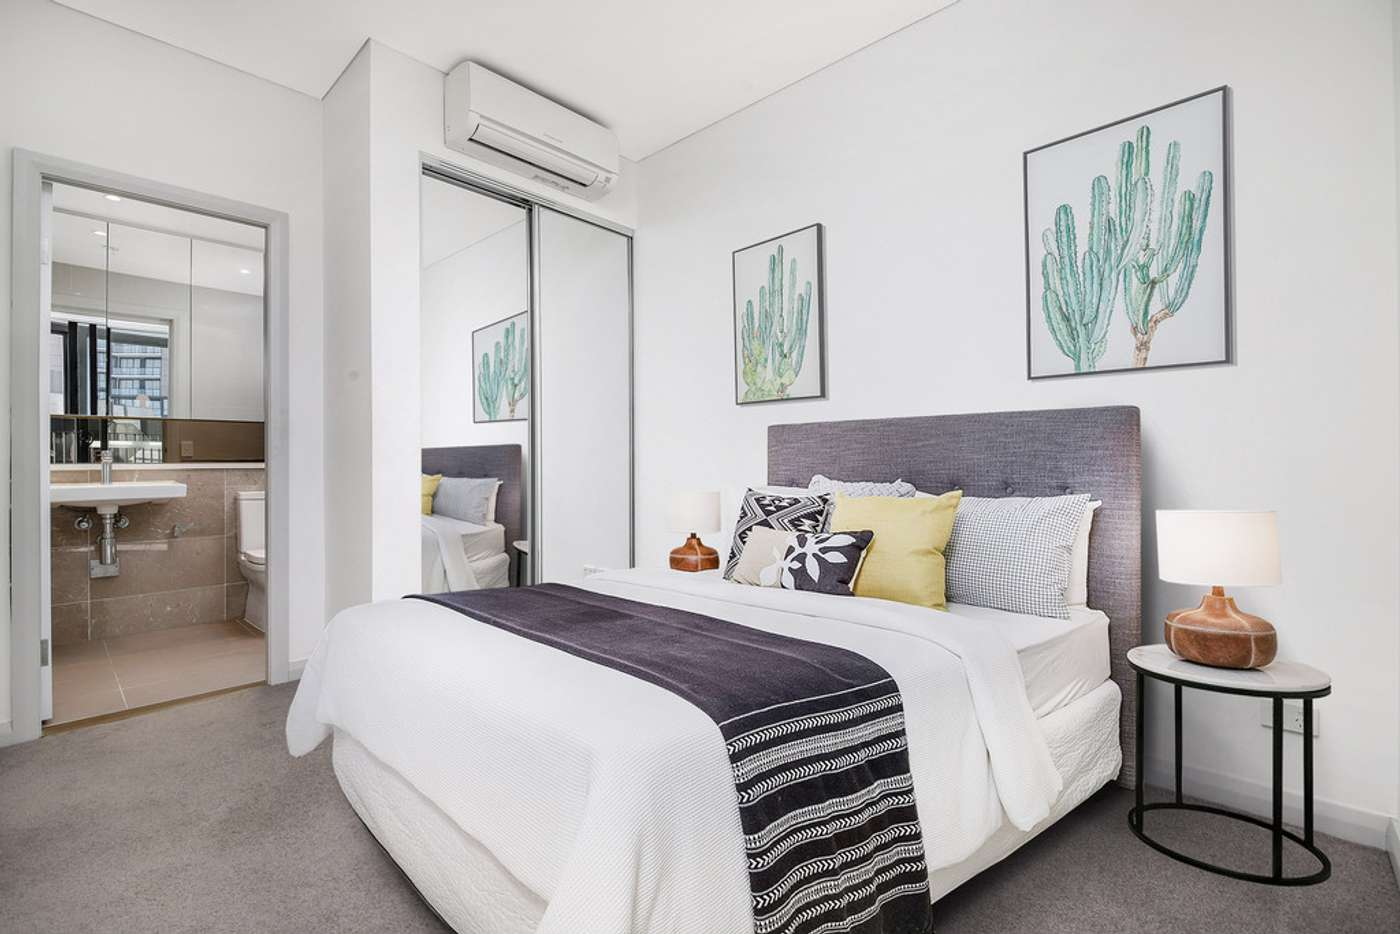 Fifth view of Homely apartment listing, 913/10 Burroway Road, Wentworth Point NSW 2127